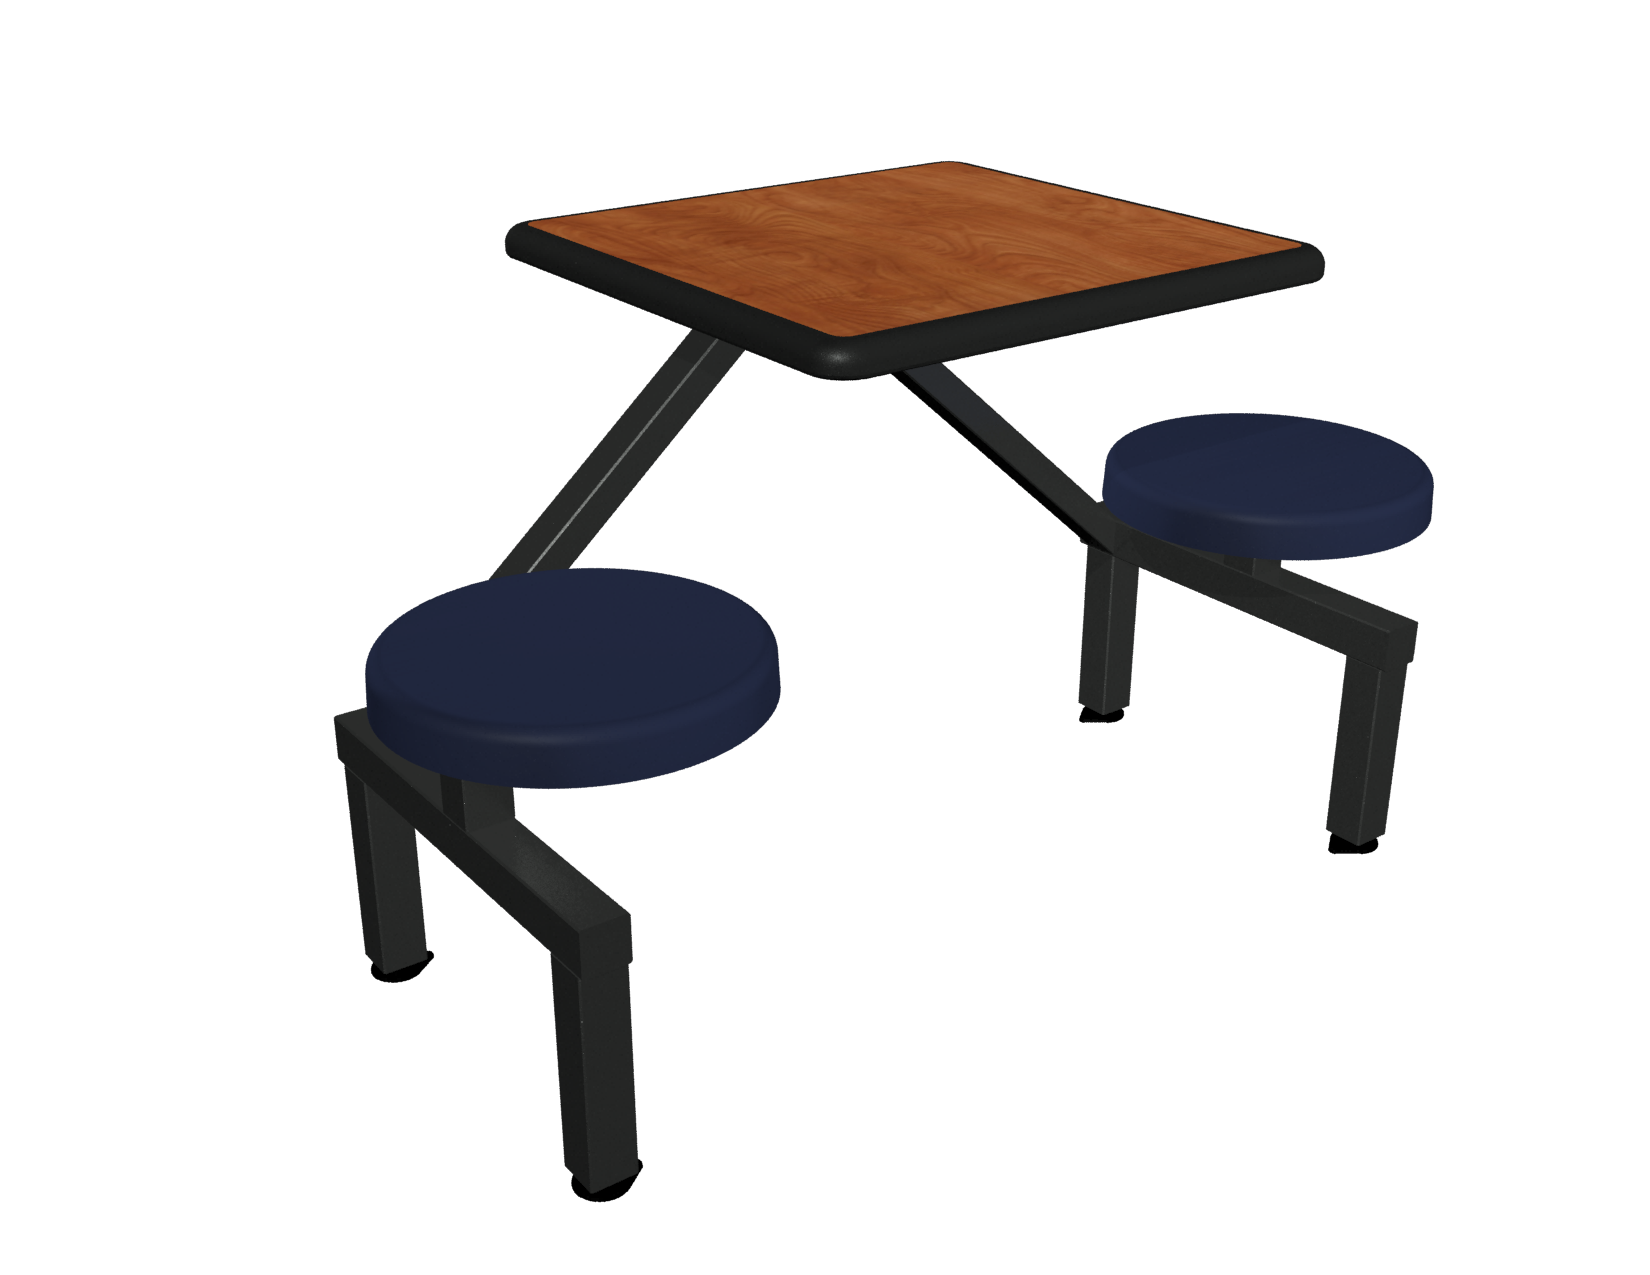 Jupiter Two Seat with Wild Cherry laminate Black Dur-A-Edge table and Atlantis composite seat